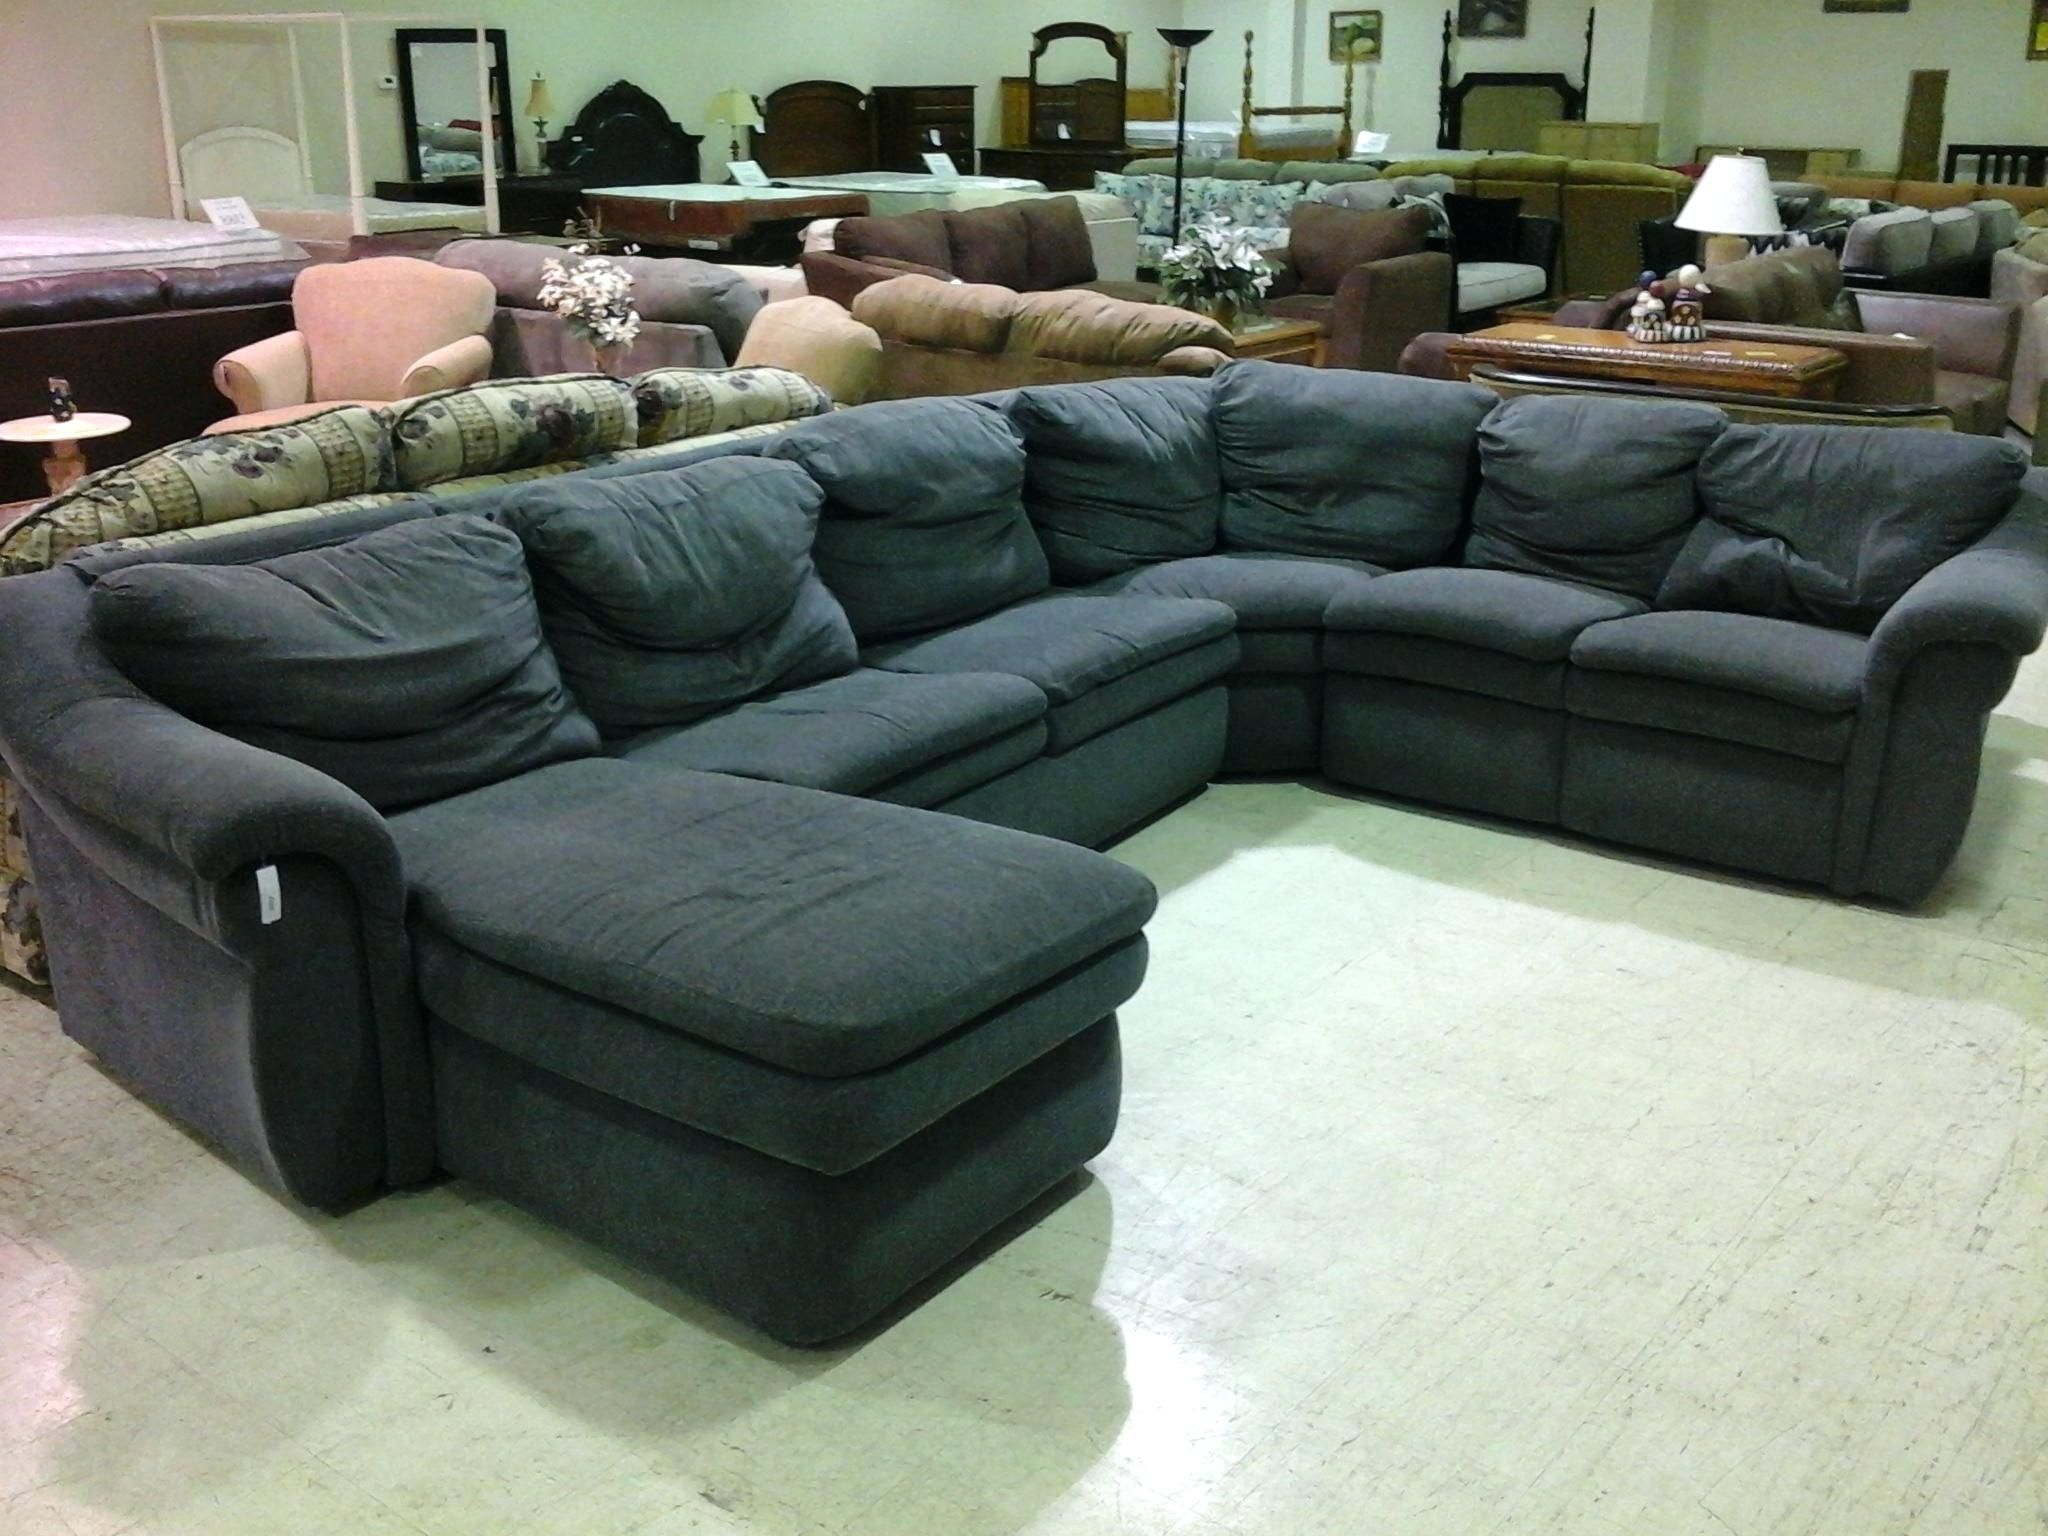 Clearance Sectional Sofas Within 2017 Sectional Sofa Sale Sa Couches For Near Me Liquidation Toronto (View 12 of 15)